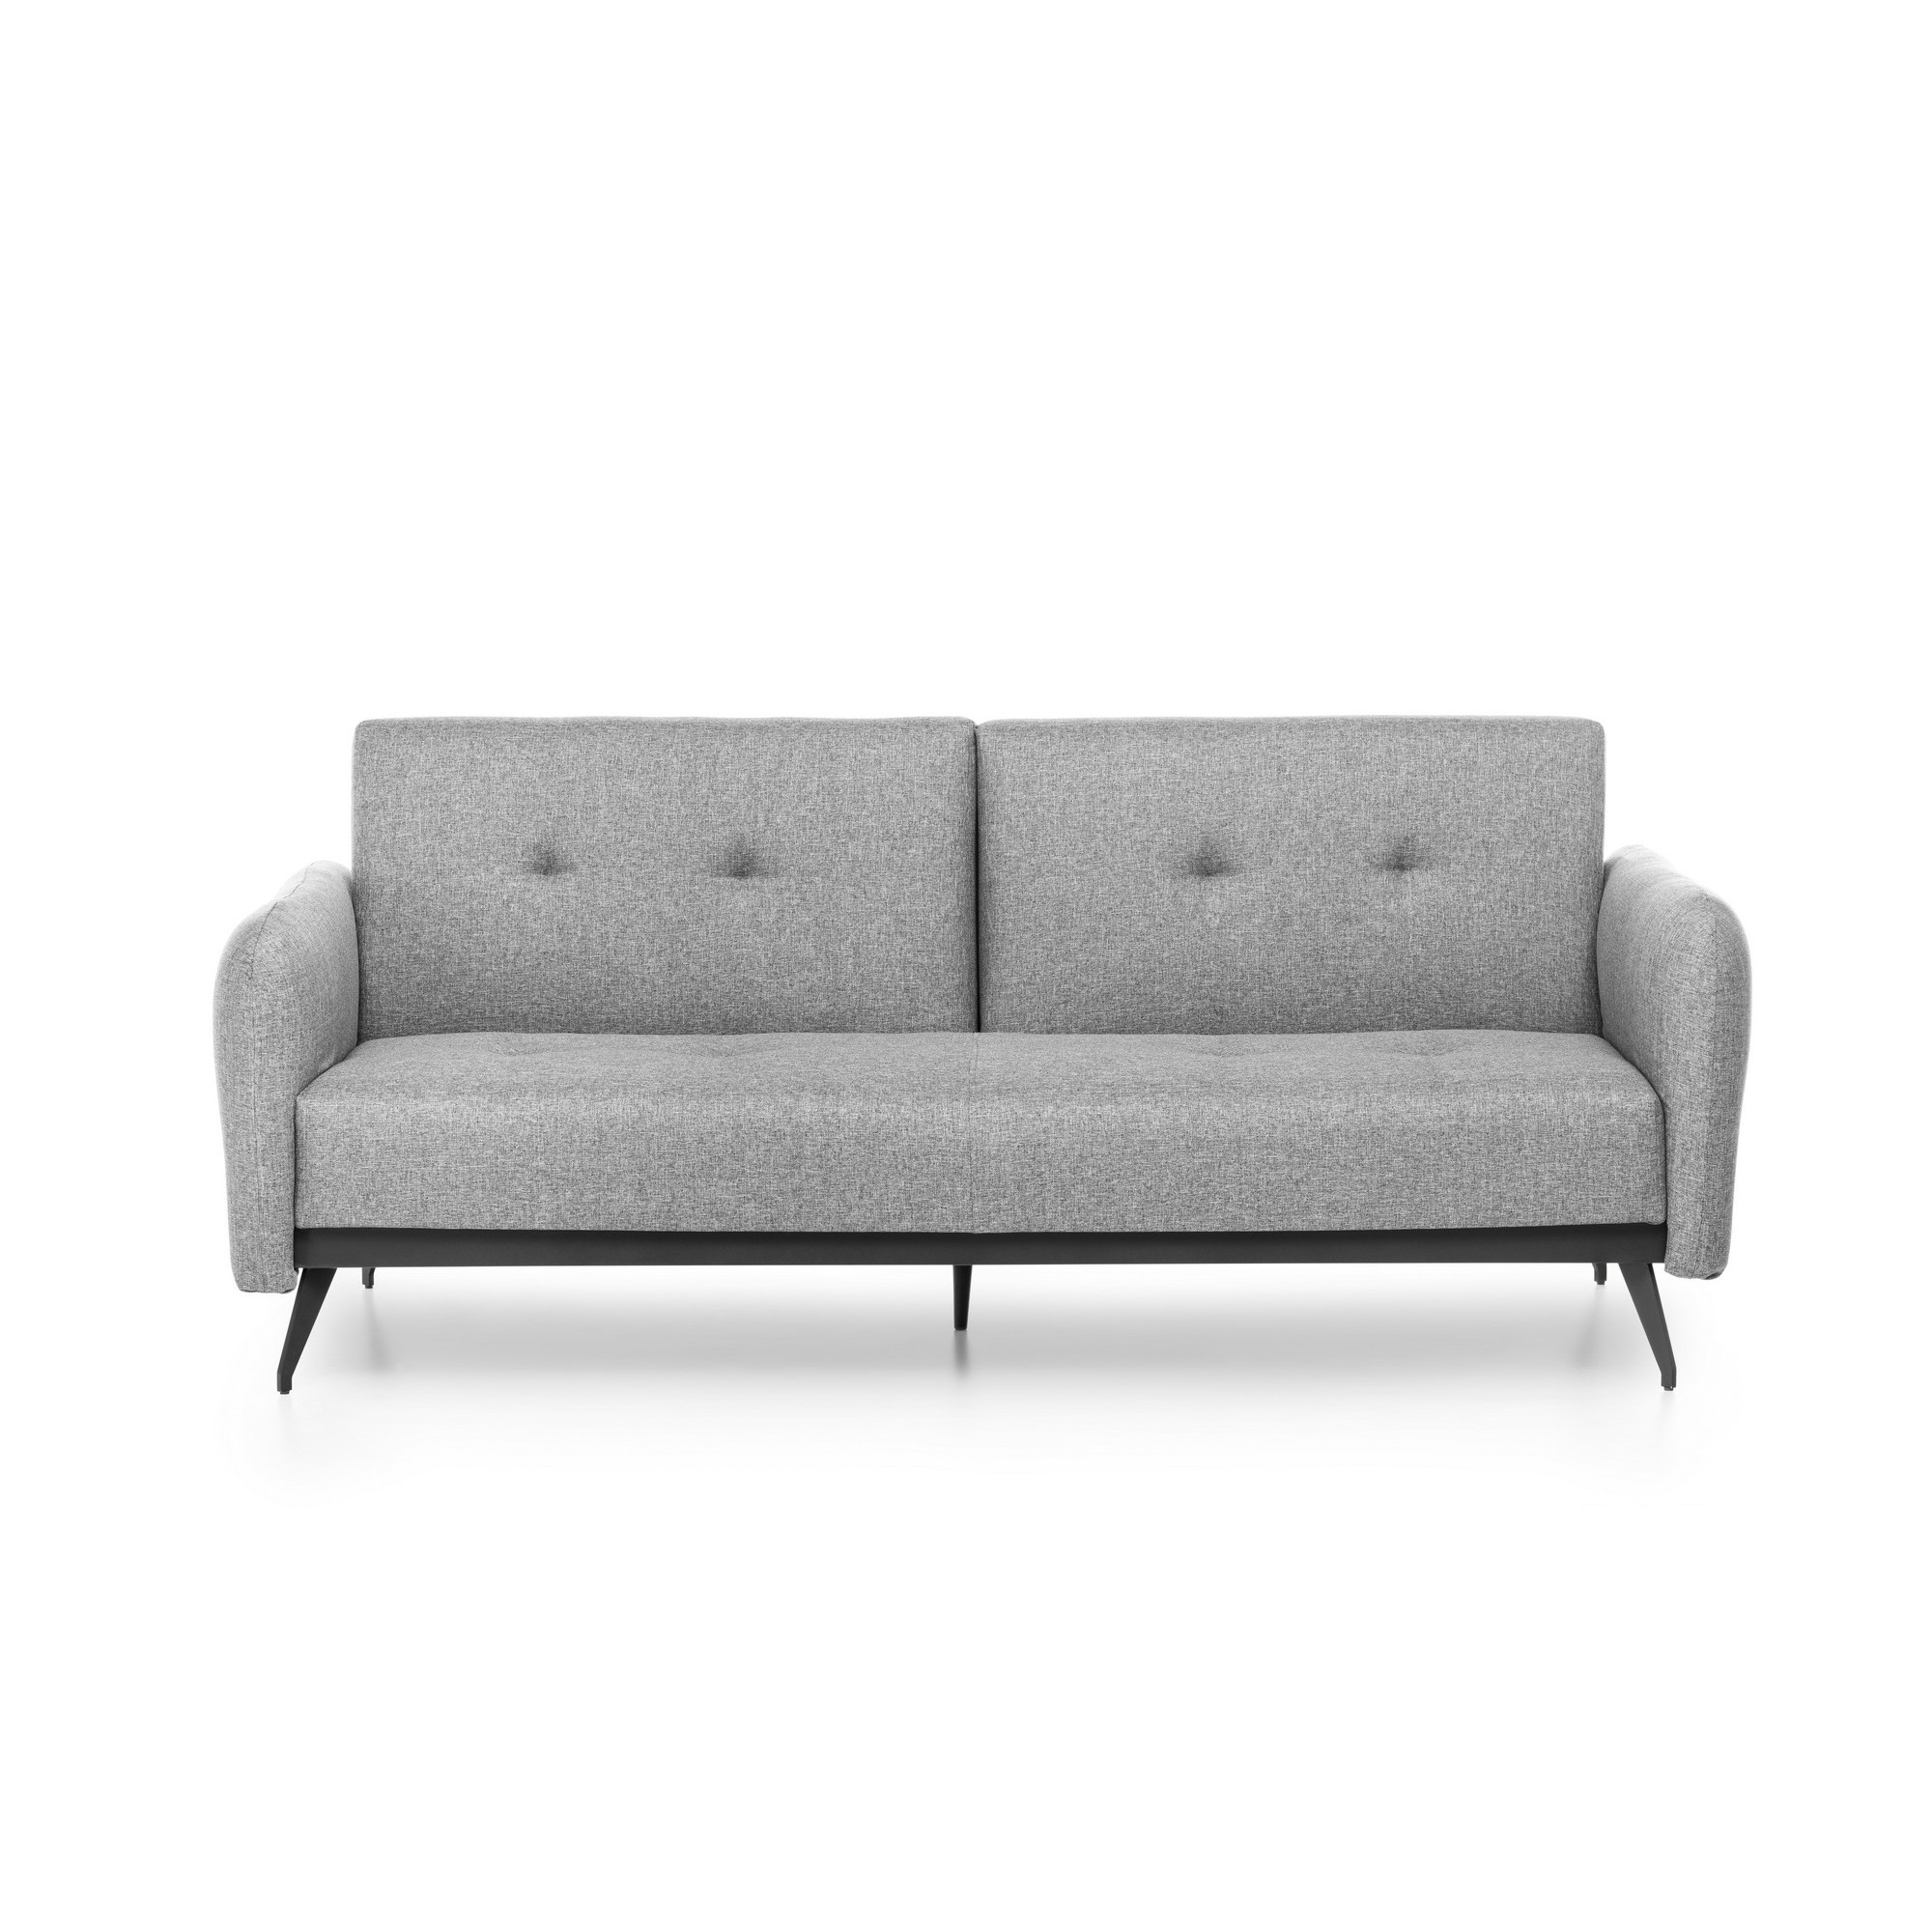 3 Seater Sofabed Ron | Grey